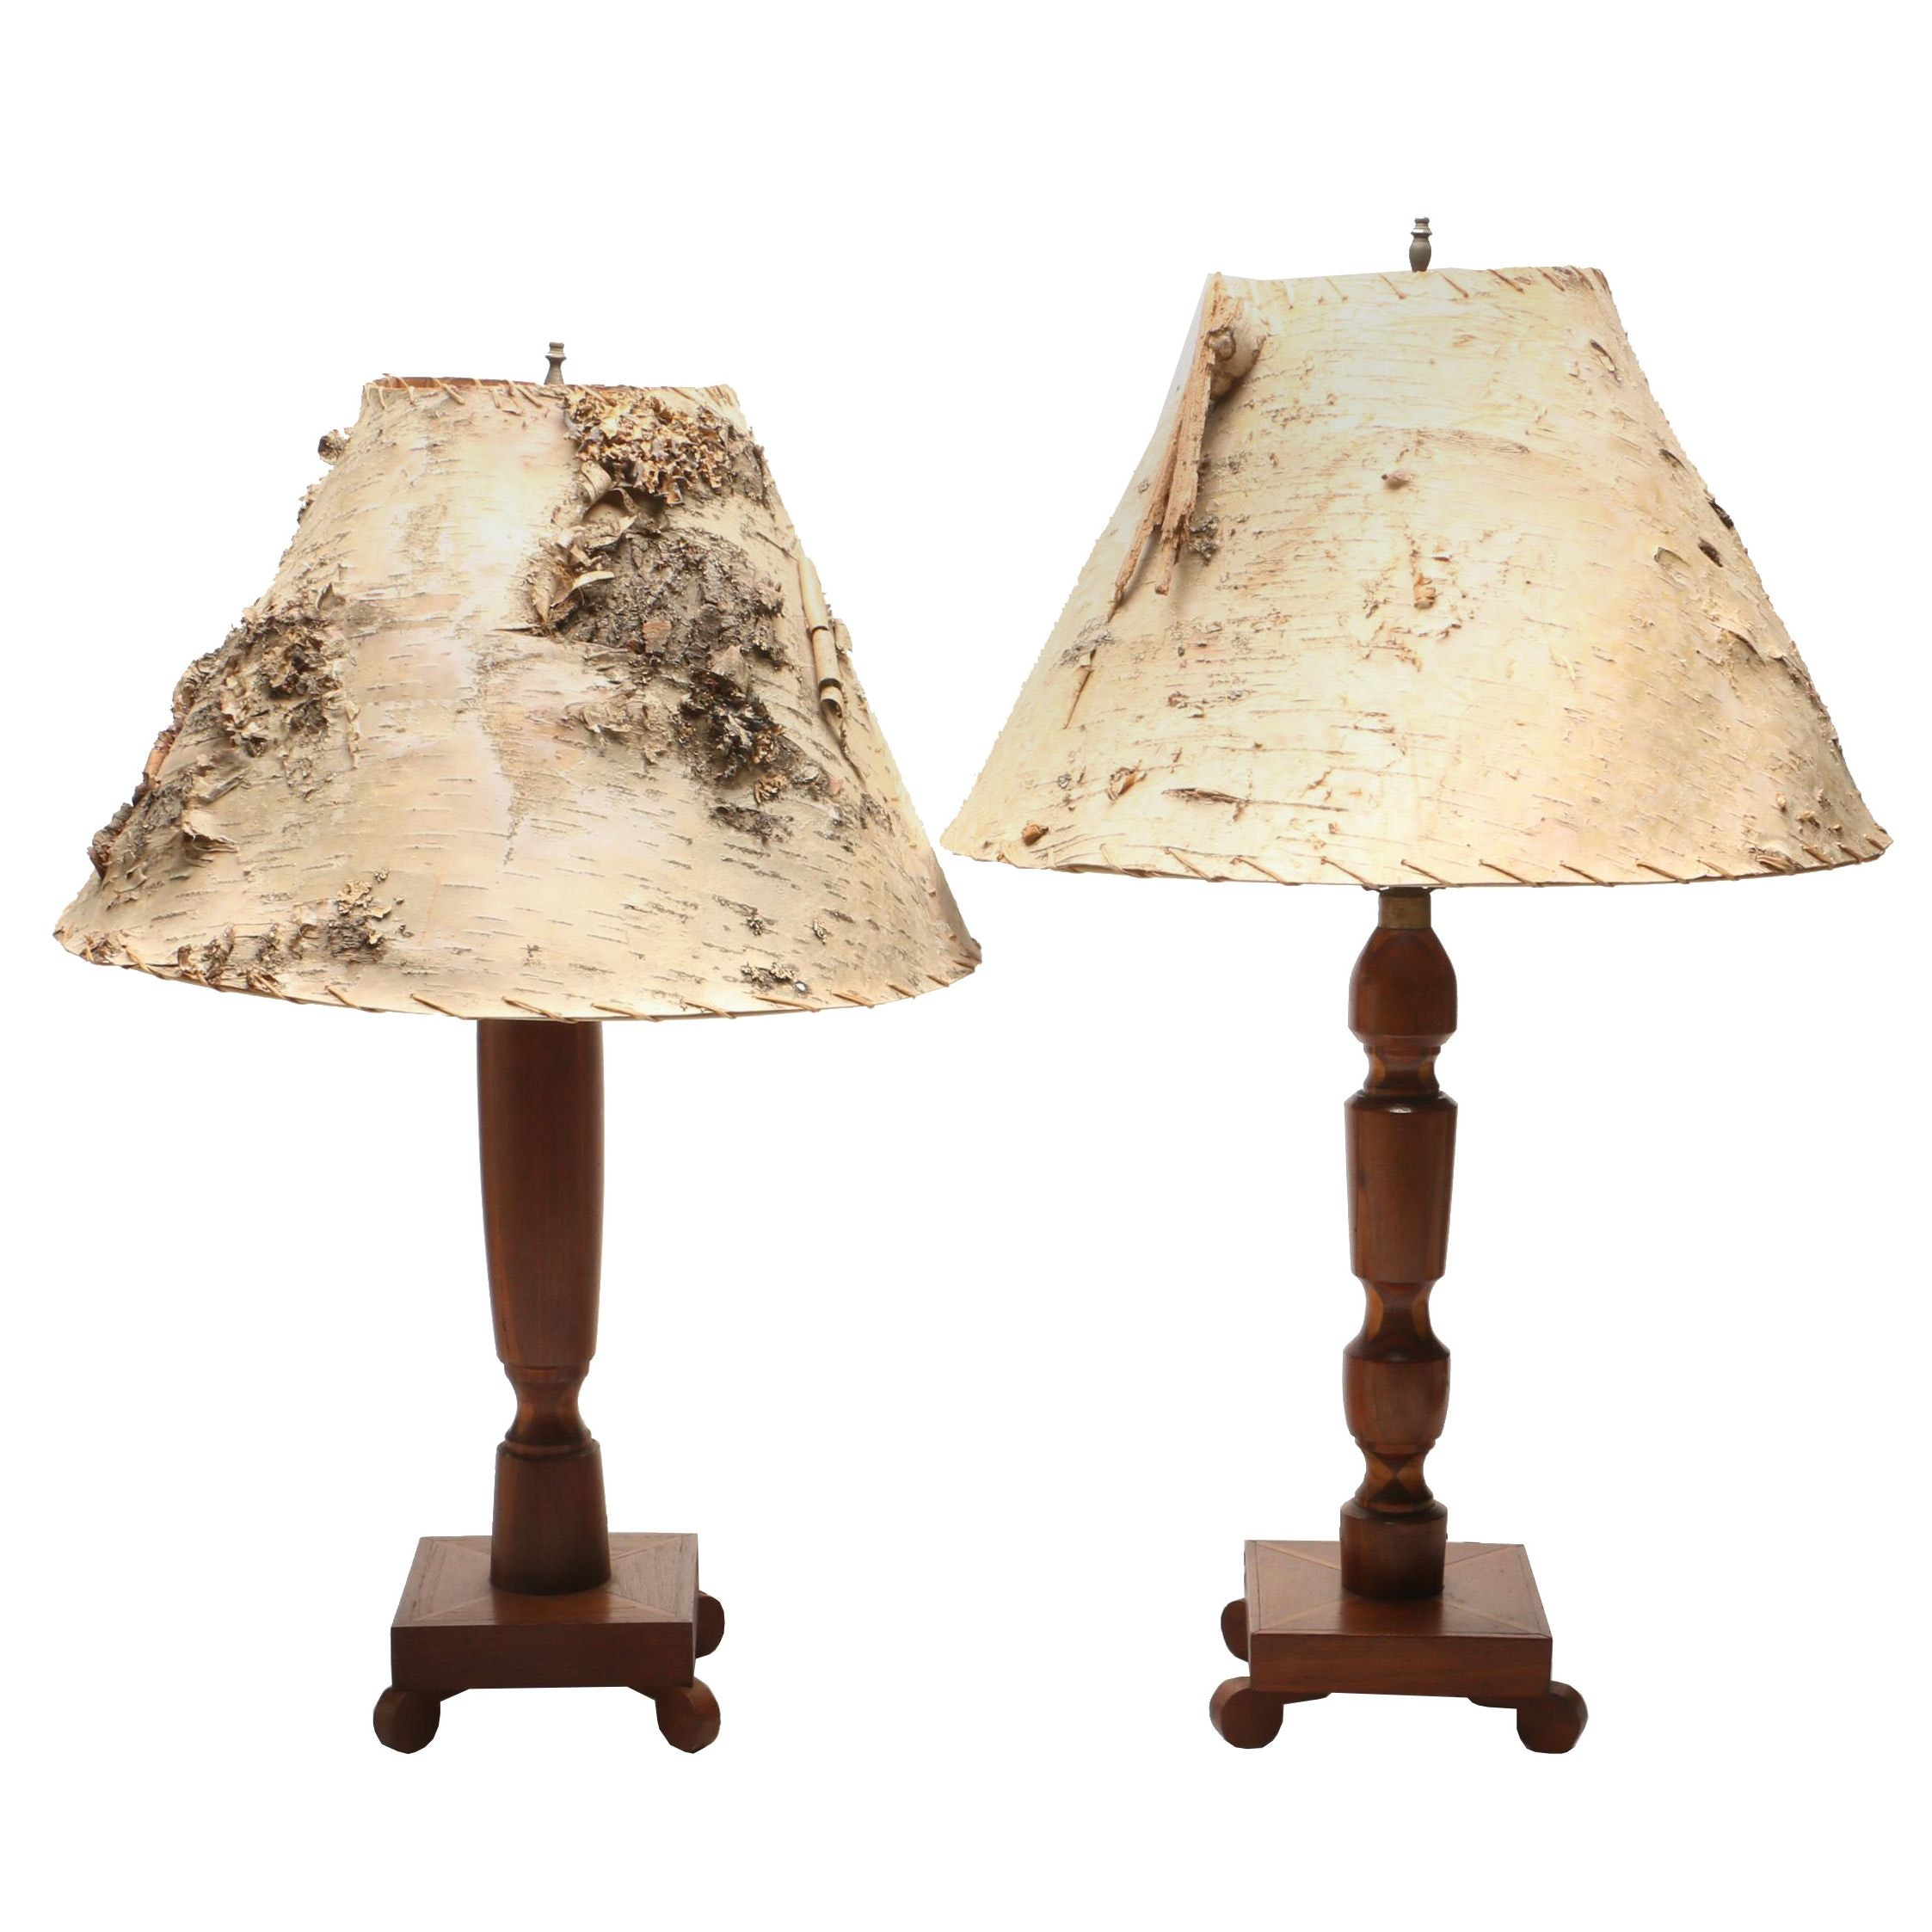 Turned Wood Table Lamps with Bark Shades